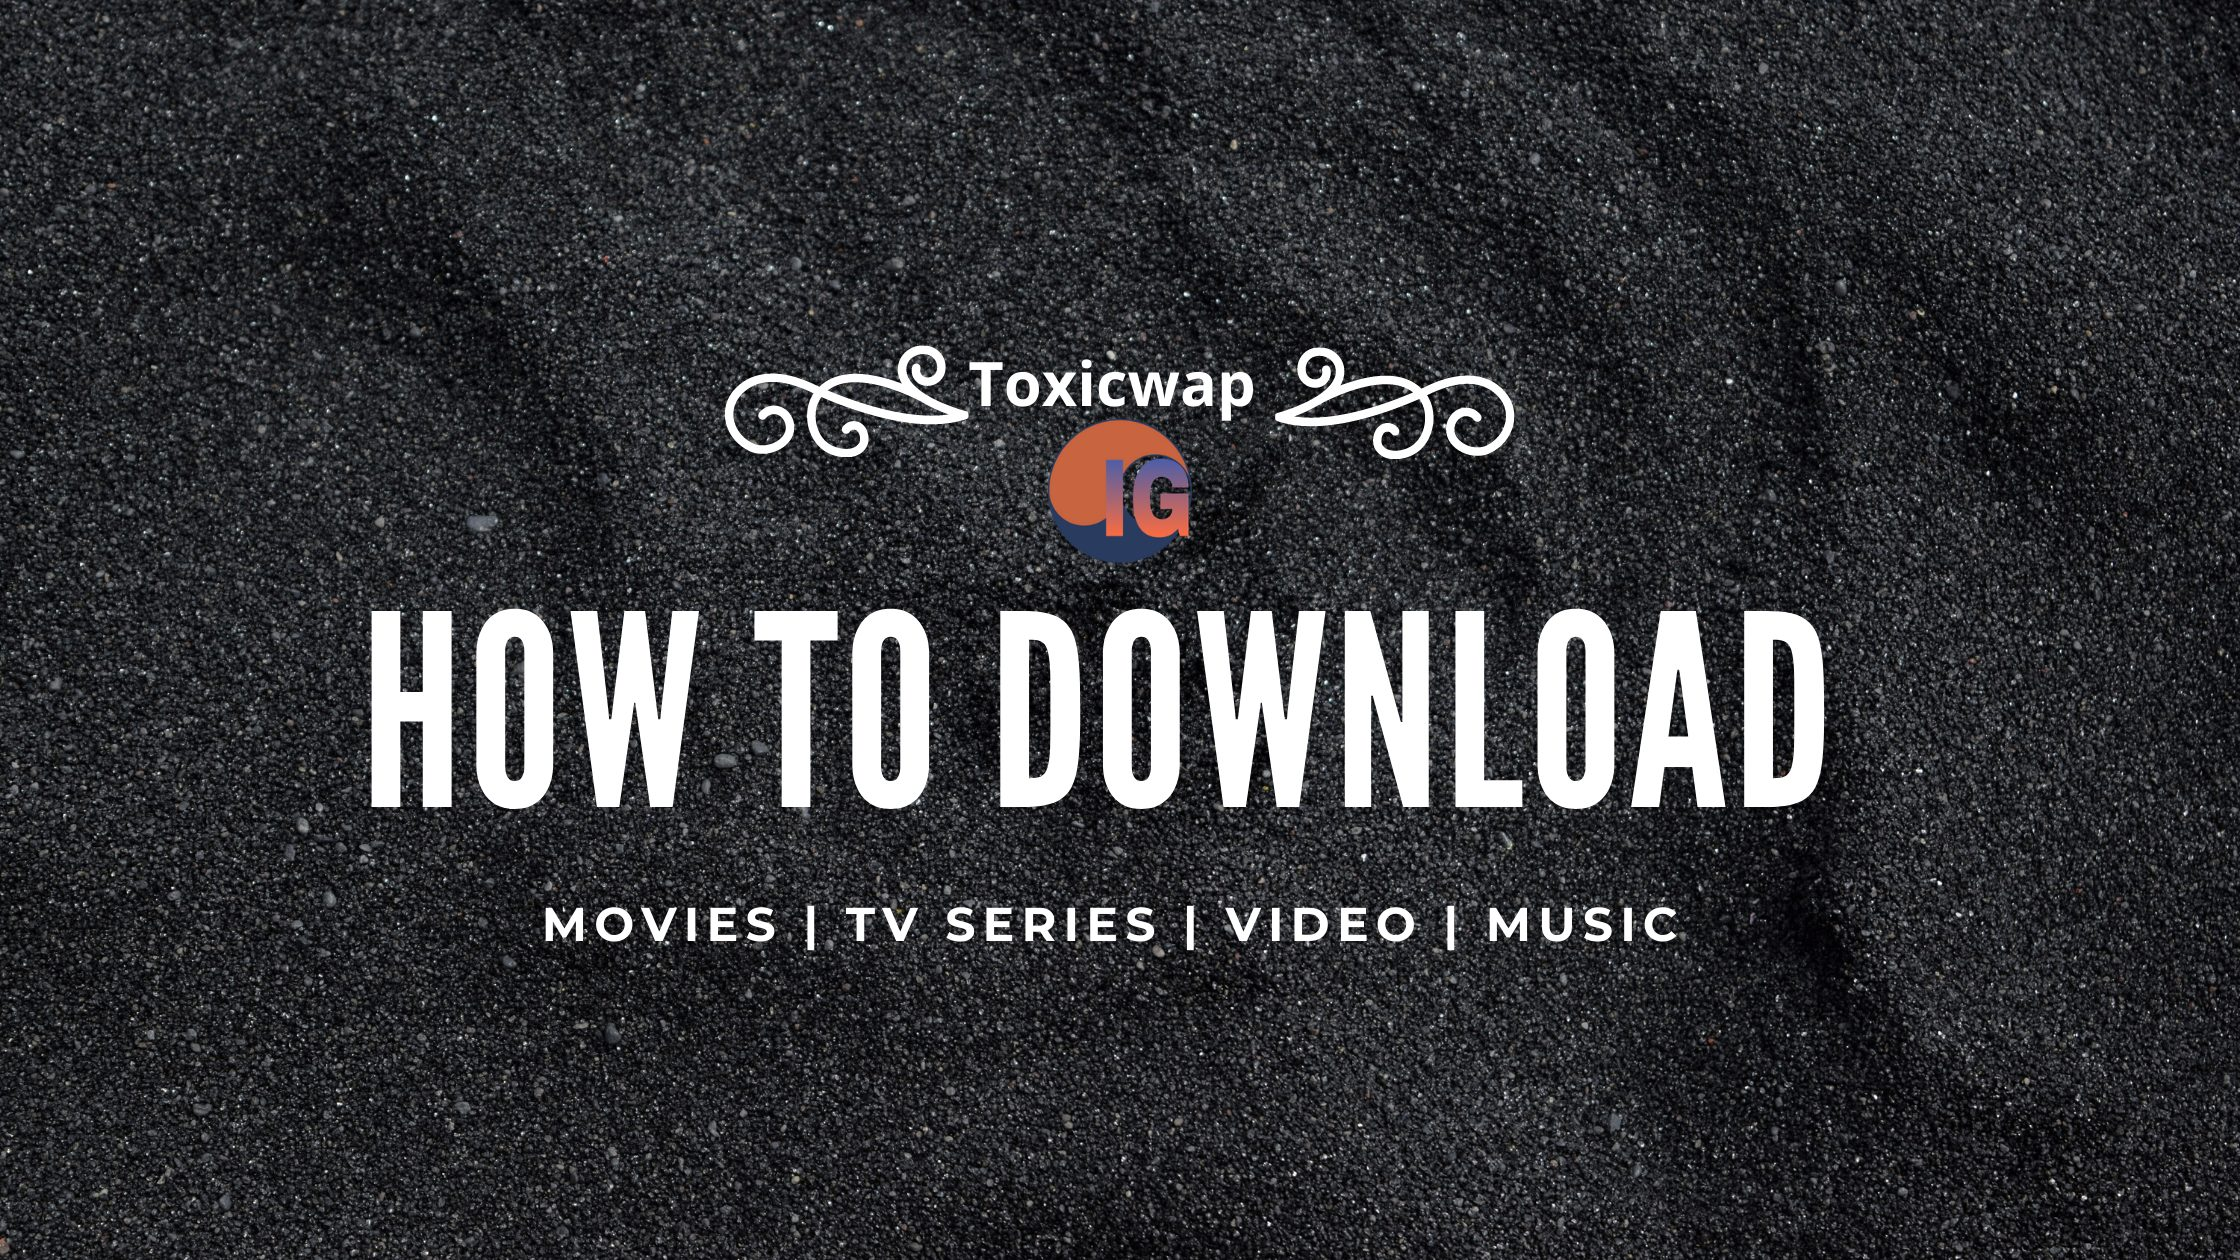 How to download on Toxicwap